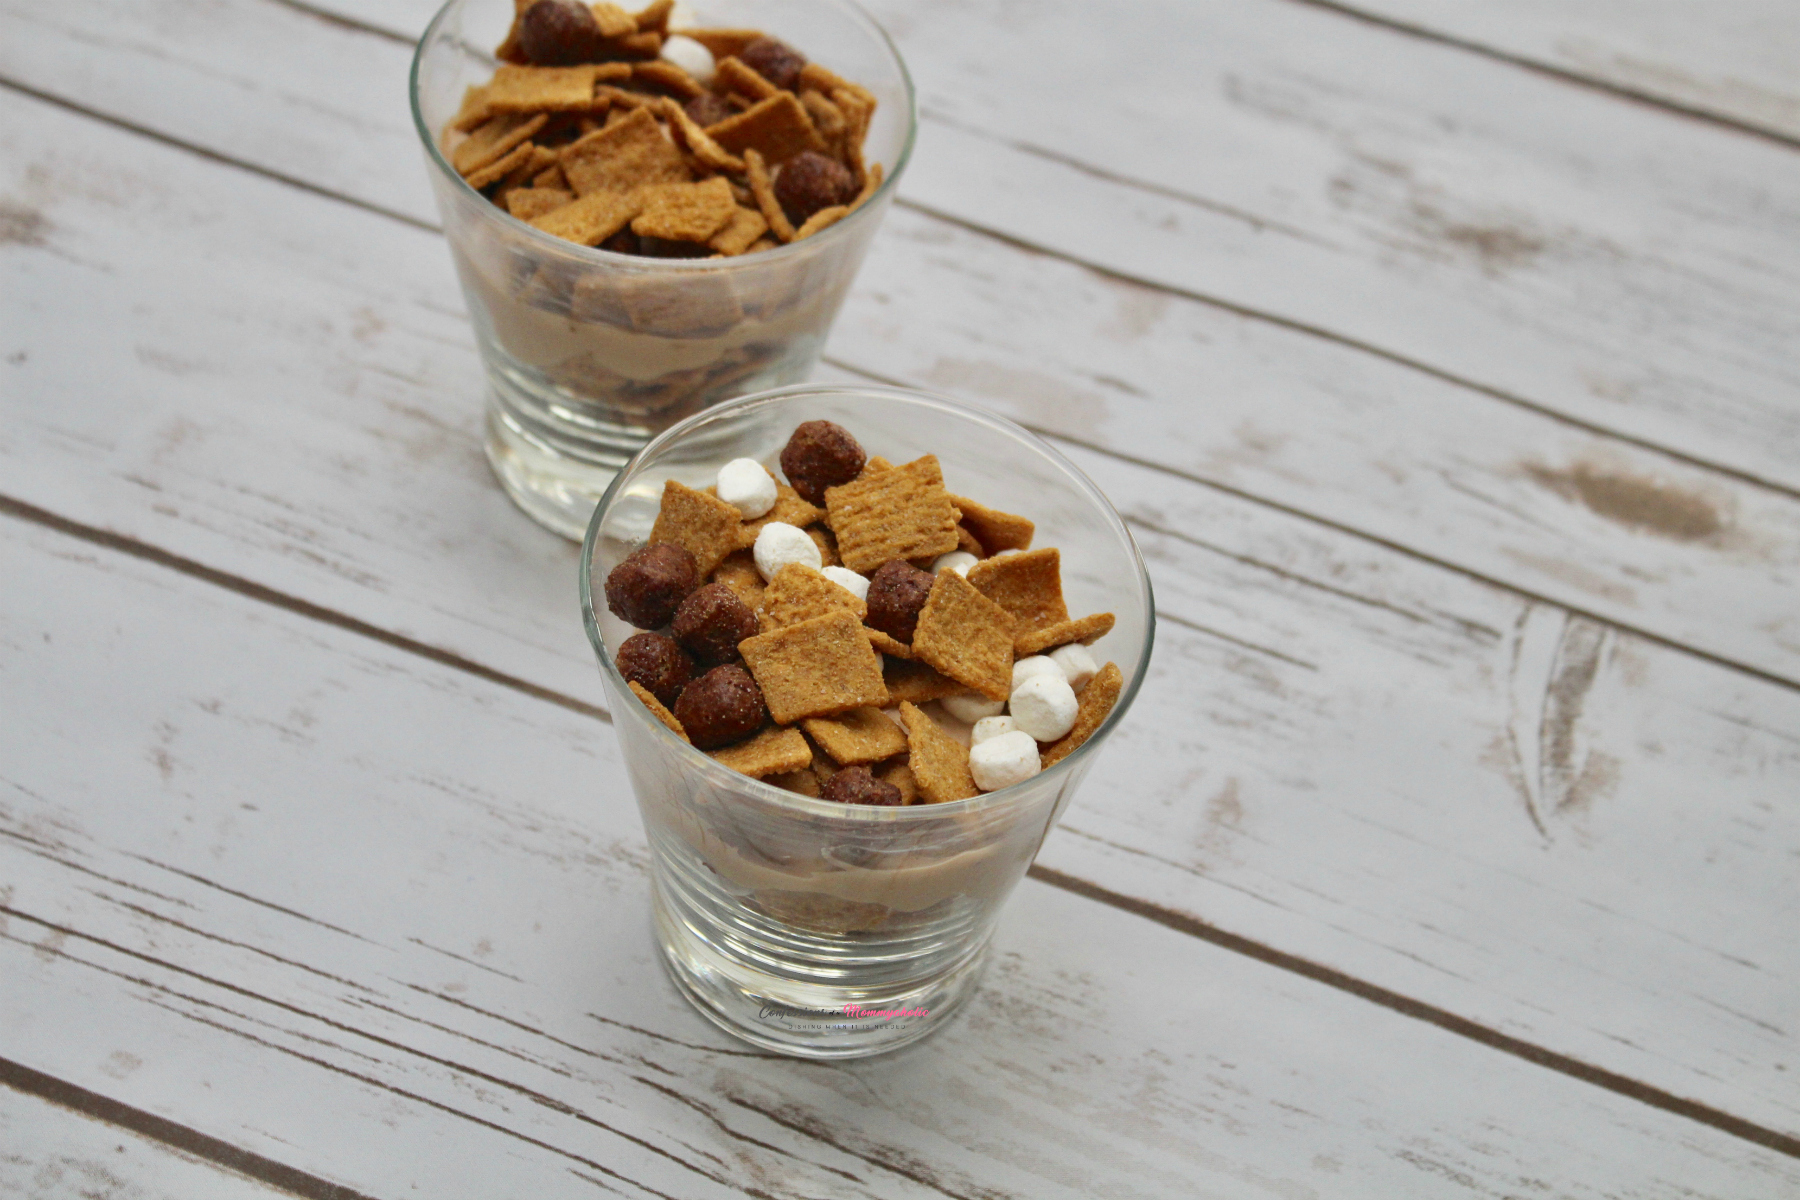 Layer 3 of S'mores Breakfast Parfait Cups